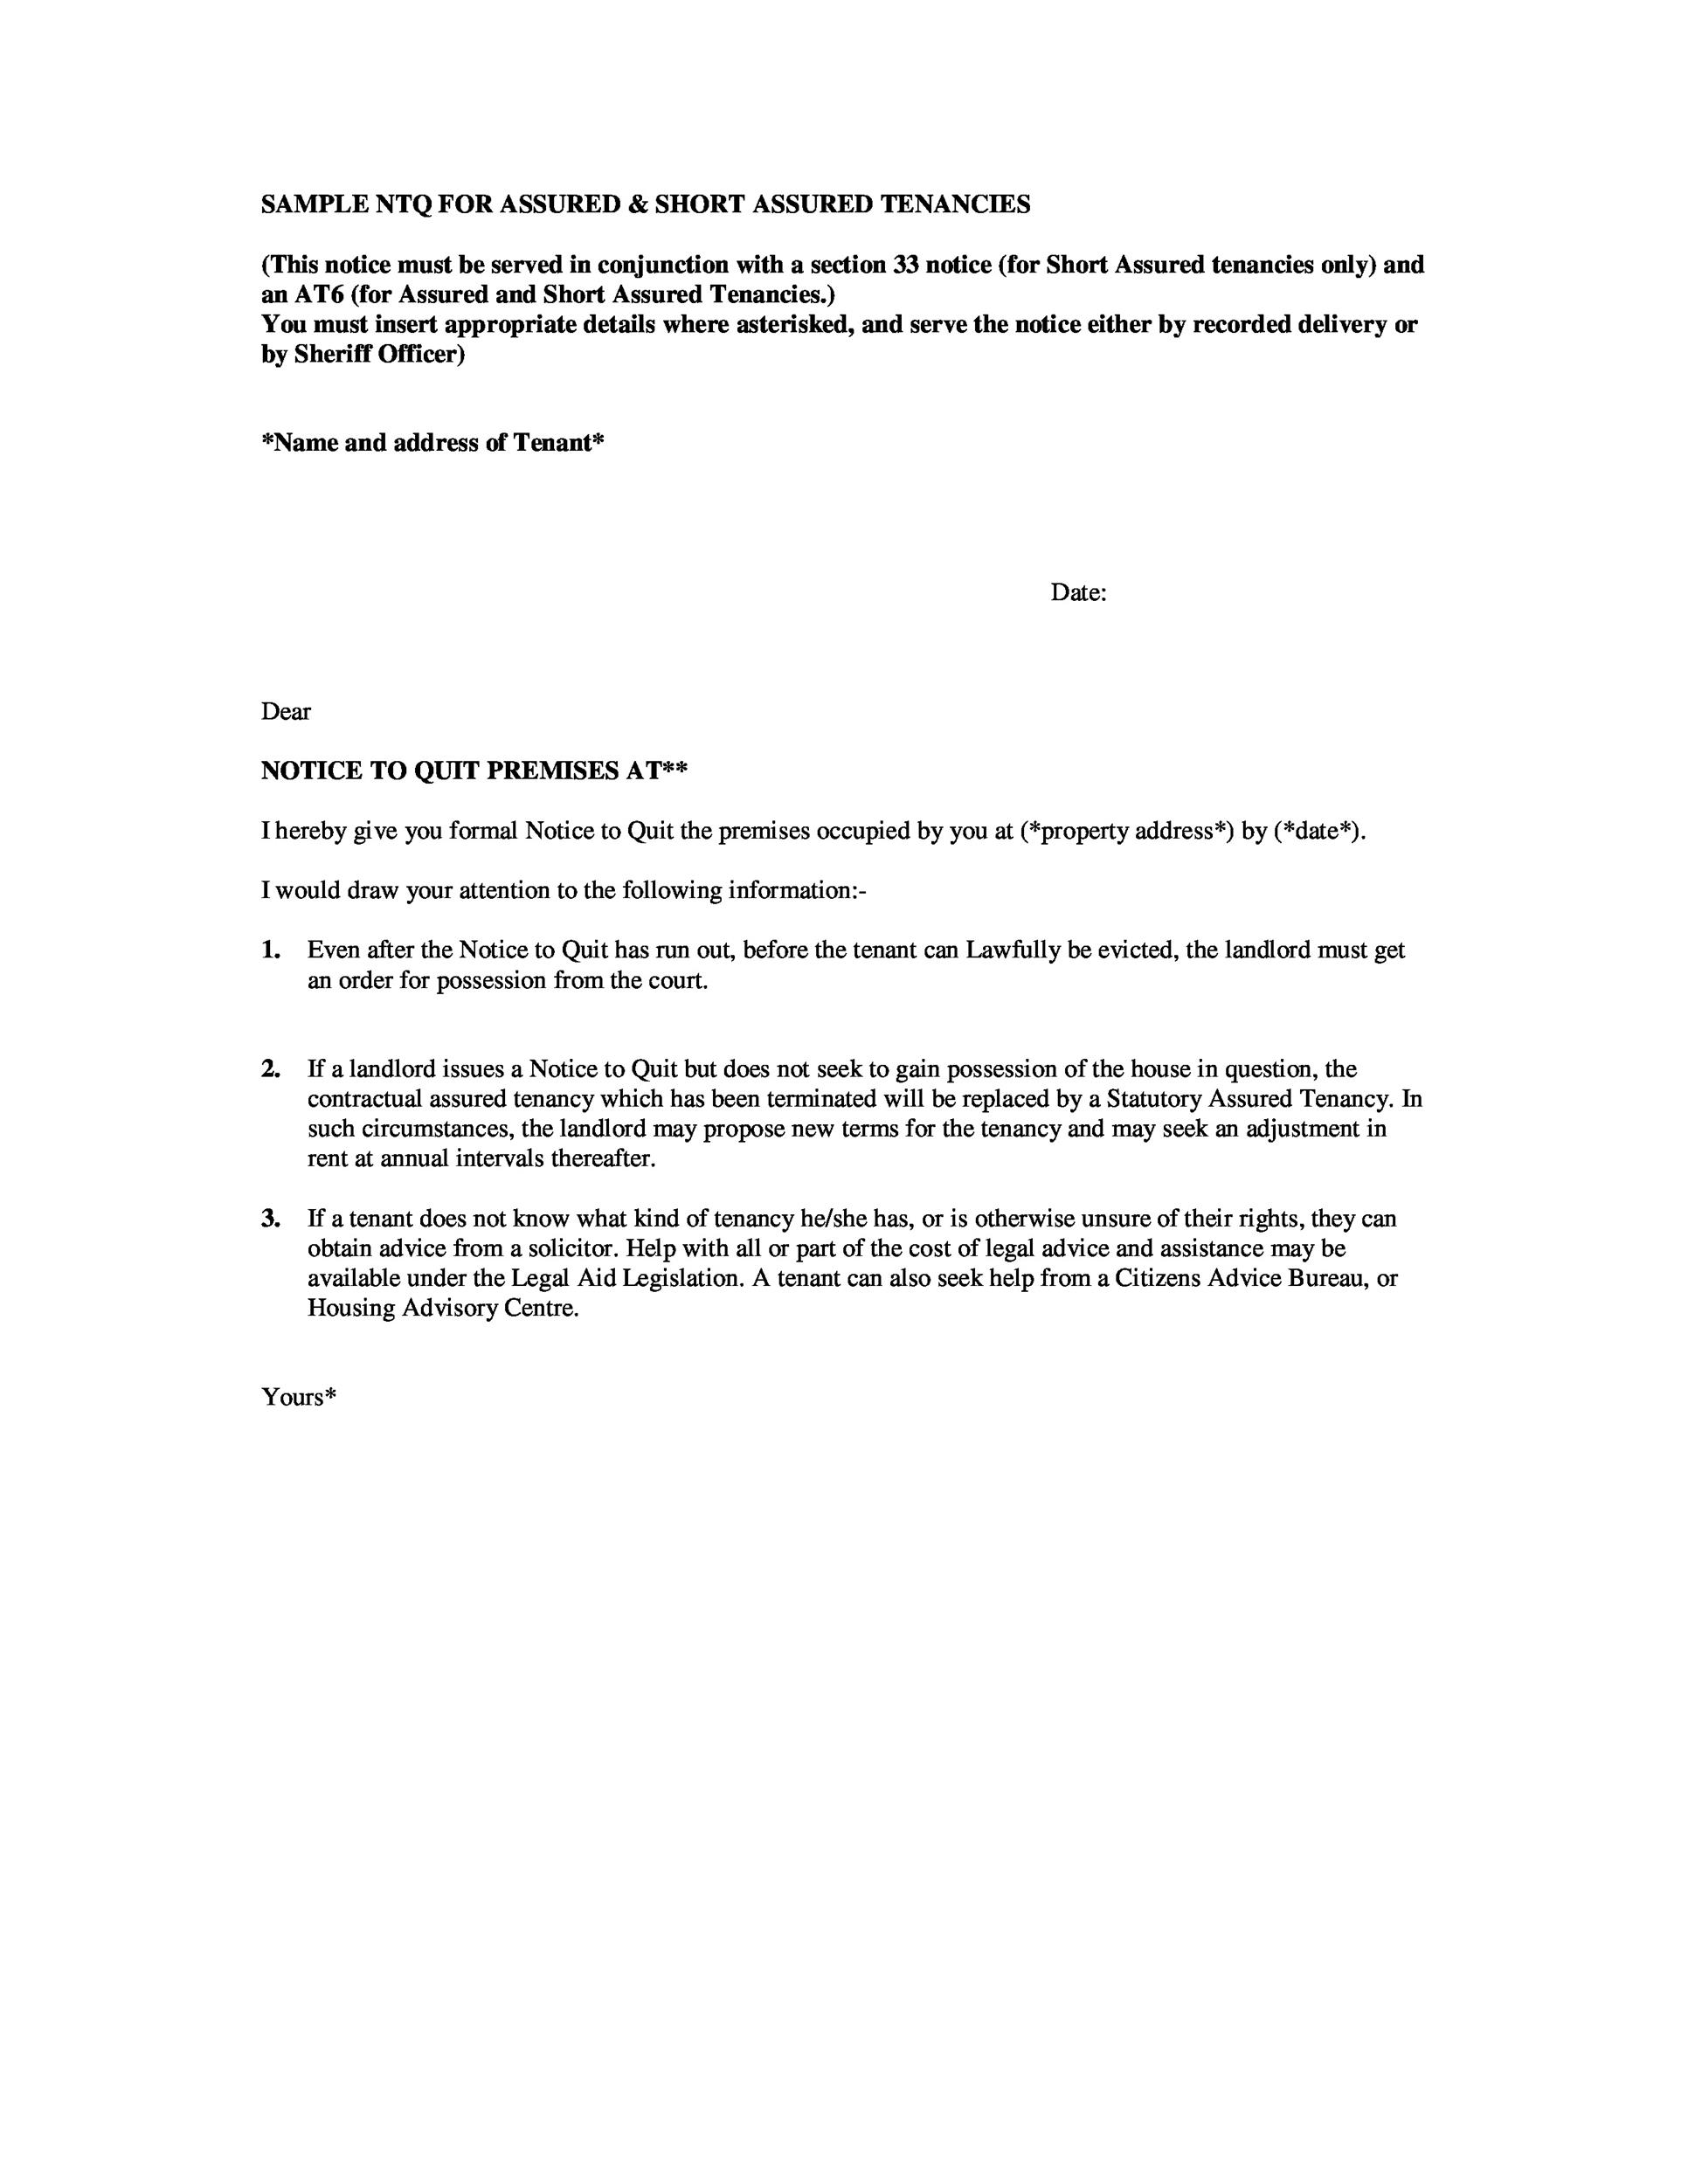 Sample Letter To Tenant To Move Out from templatelab.com